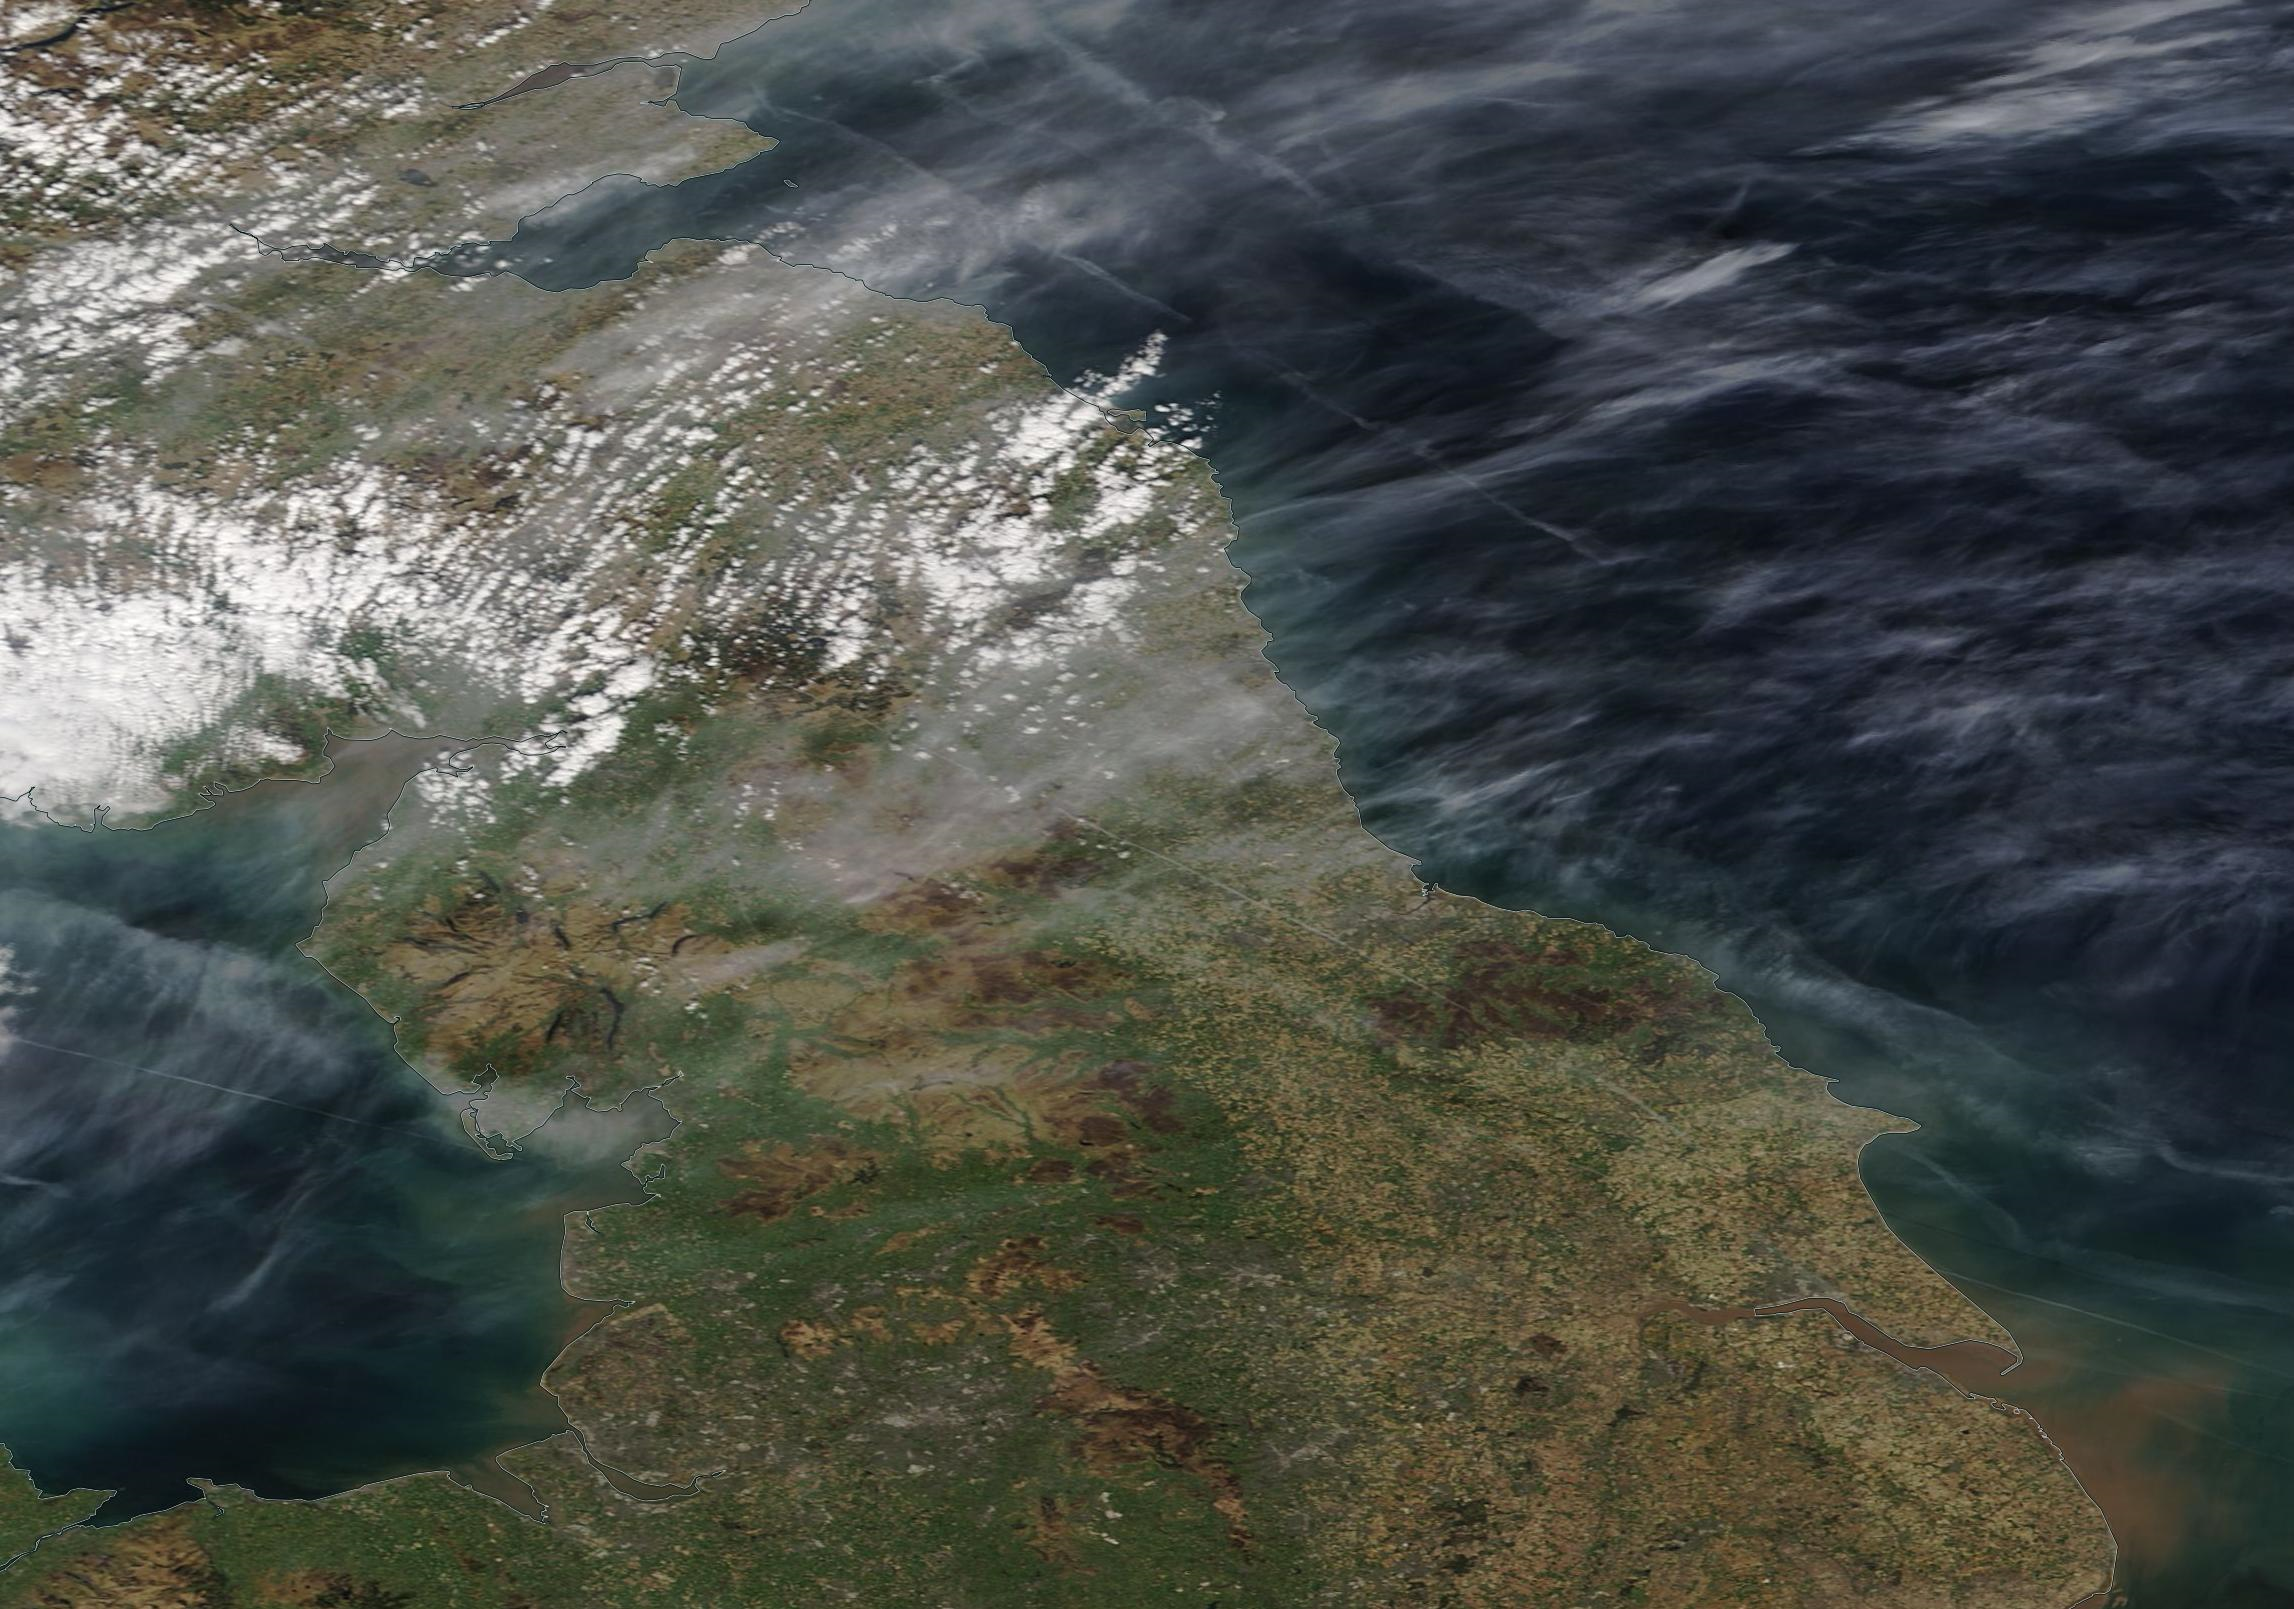 Borders and southern Scotland, northern England chemtrail skies Tuesday 7 April 2020. https://go.nasa.gov/2UQQbs0